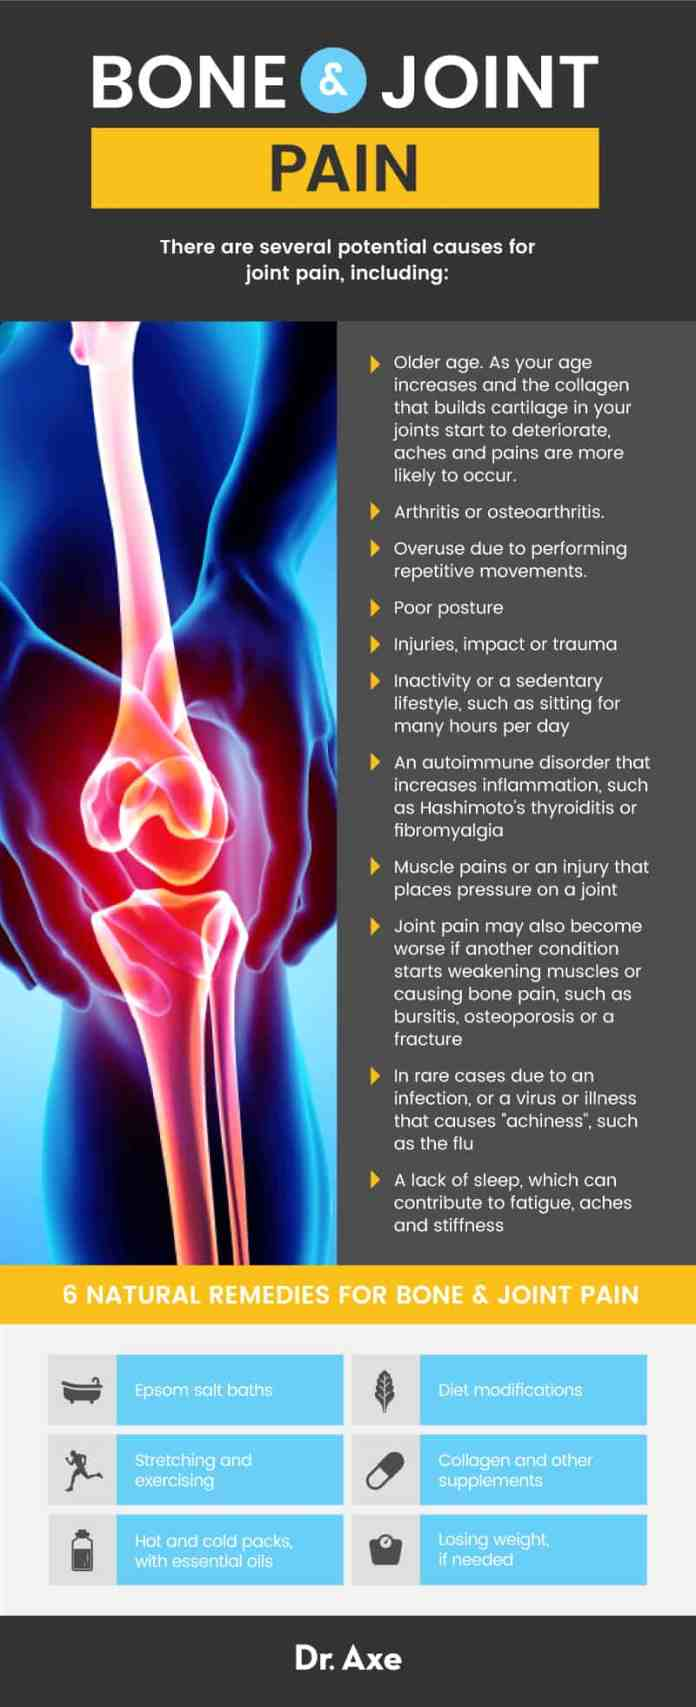 Natural remedies for bone and joint pain: bone and joint pain - Dr. Axe